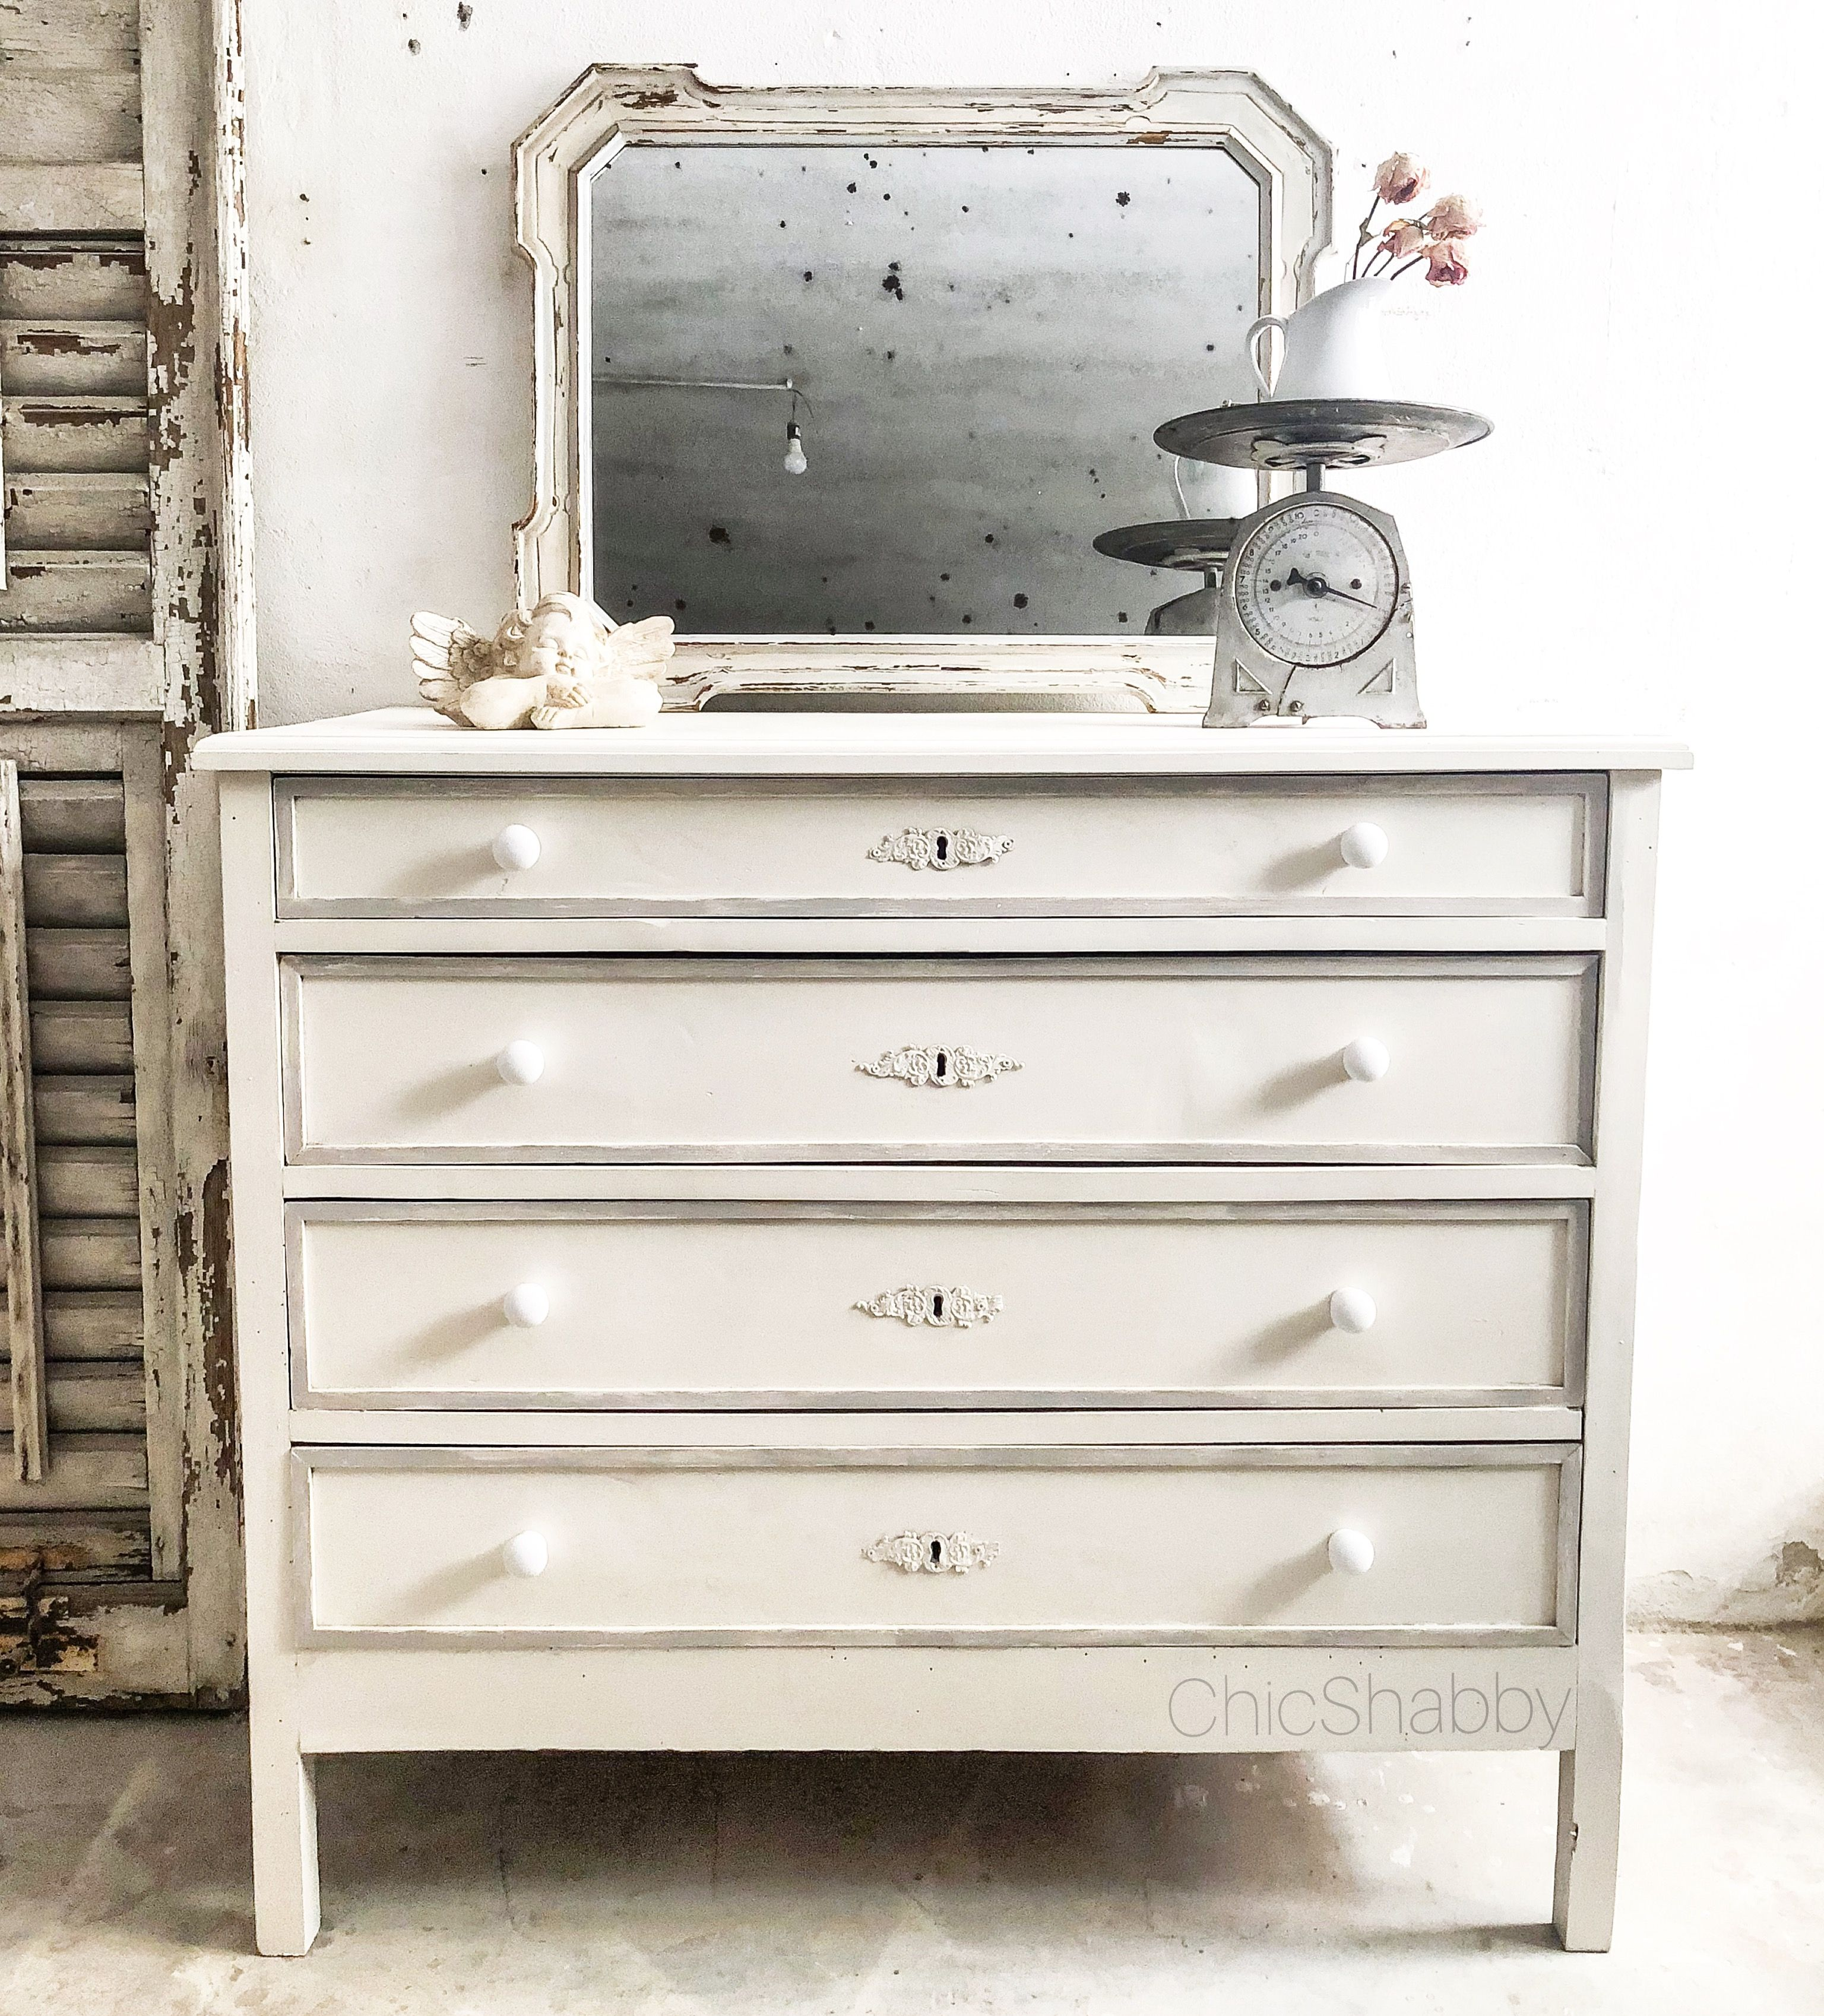 Cassettiera shabby chic antique Chest of drawers shabby chic | Le ...